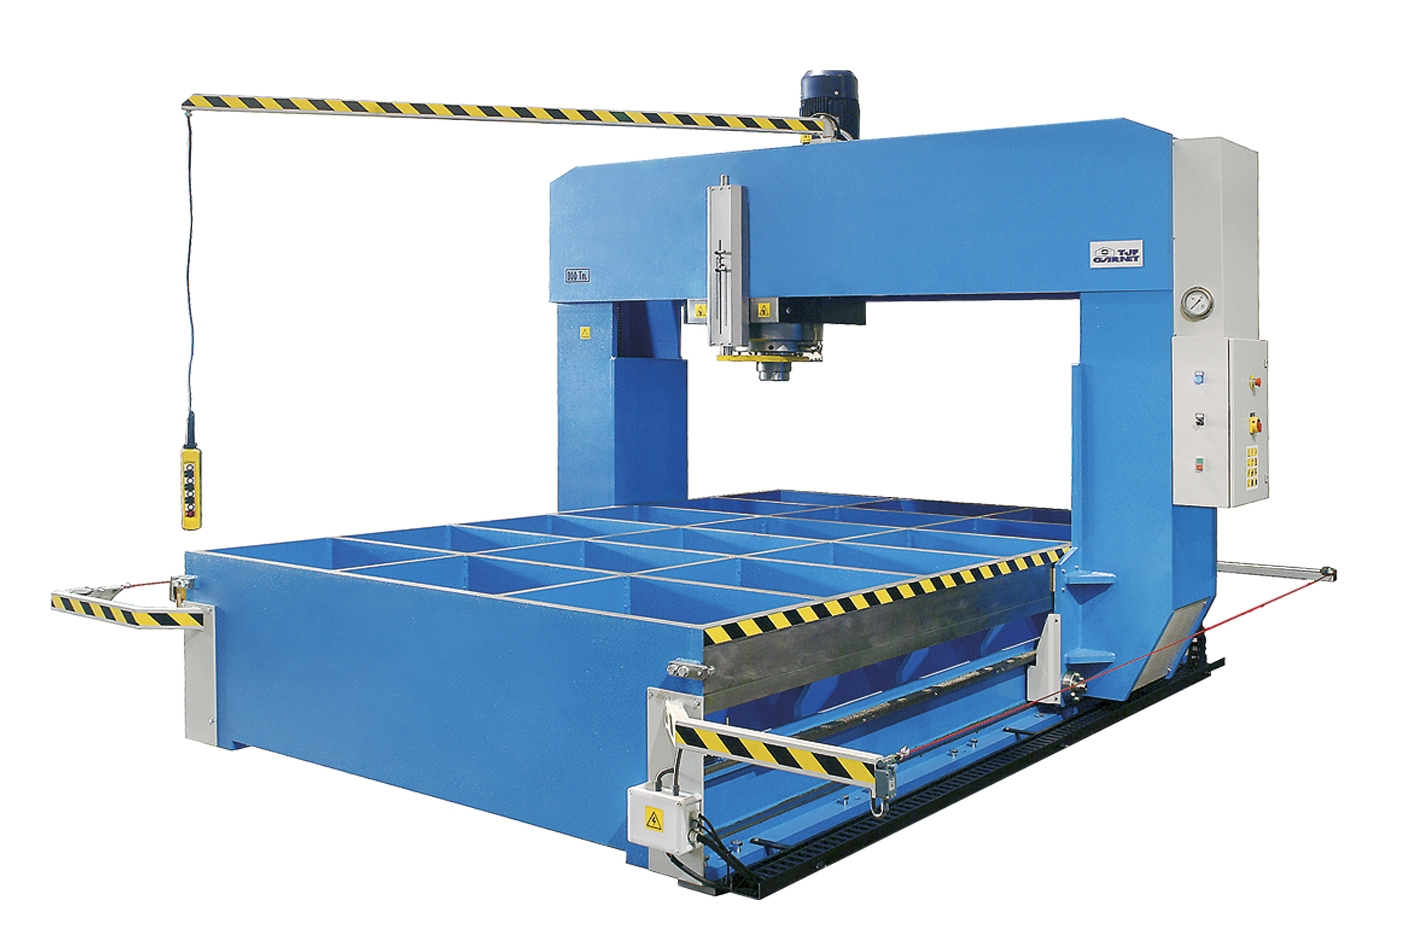 Motorized hydraulic presses with sliding frame and moveable head: T series